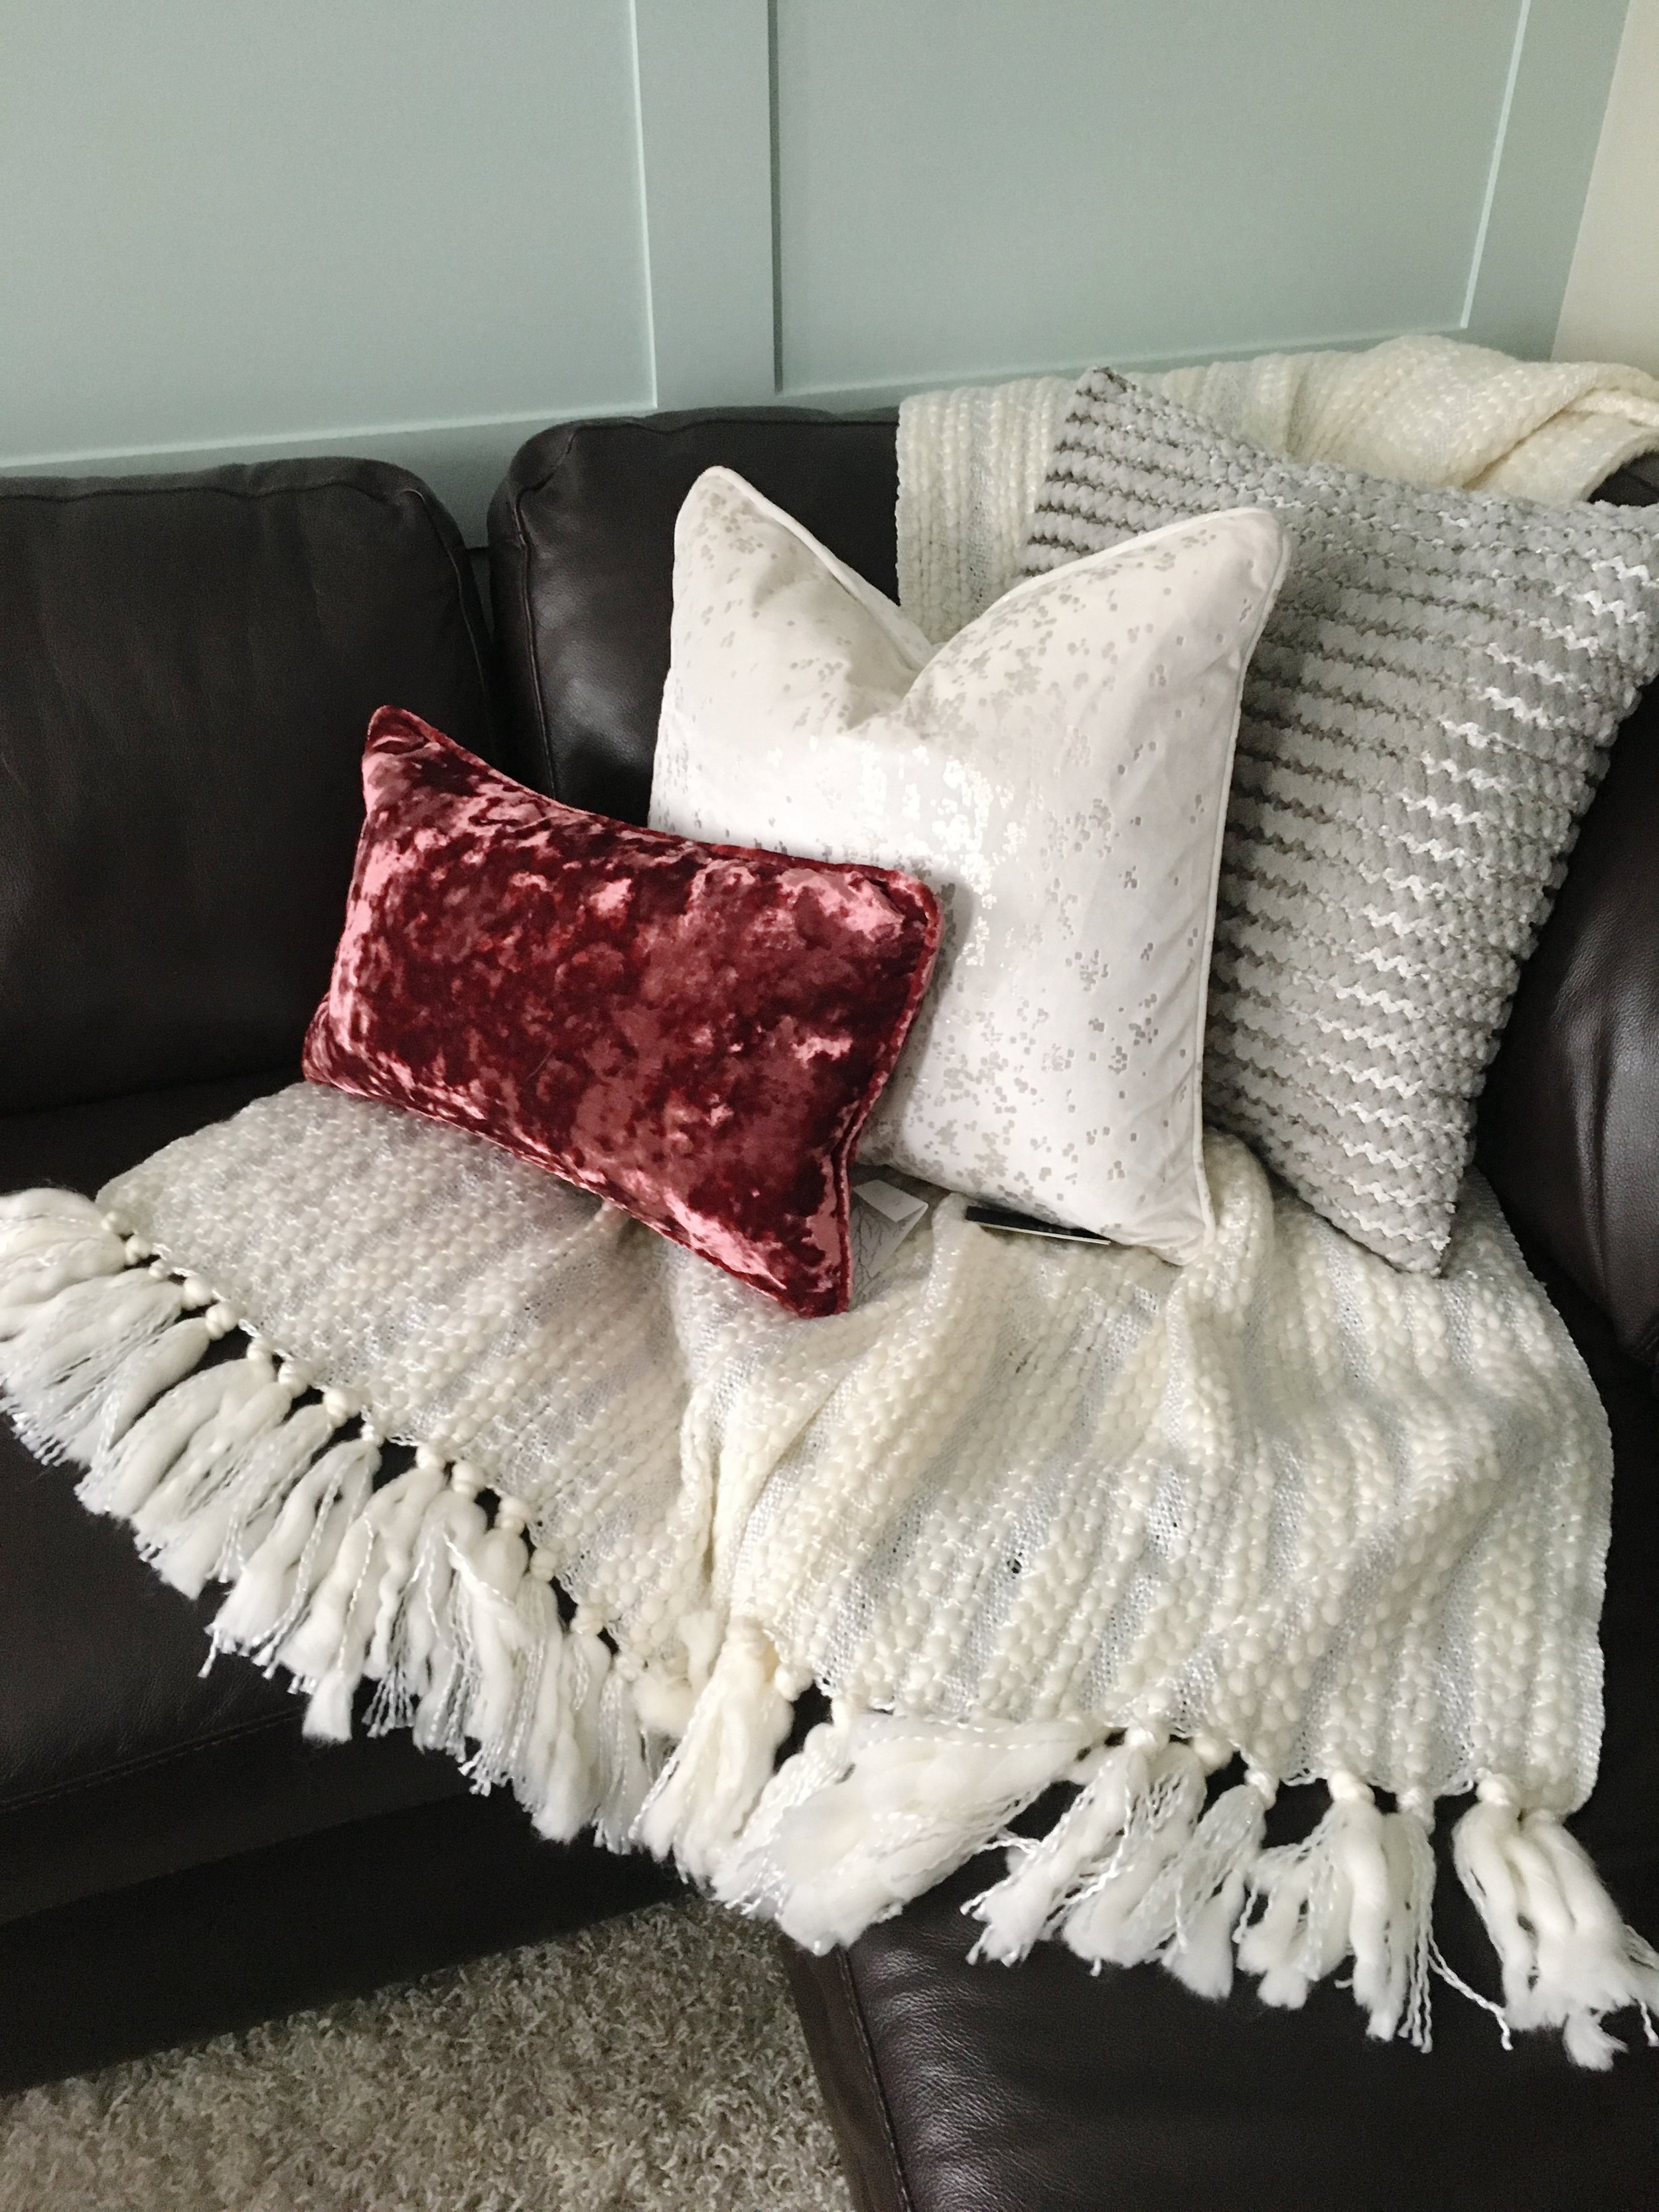 [I COULDN'T RESIST ADDING A POP OF COLOUR WITH THESE BEAUTIFUL CRUSHED VELVET PILLOWS FROM HOMESENSE]